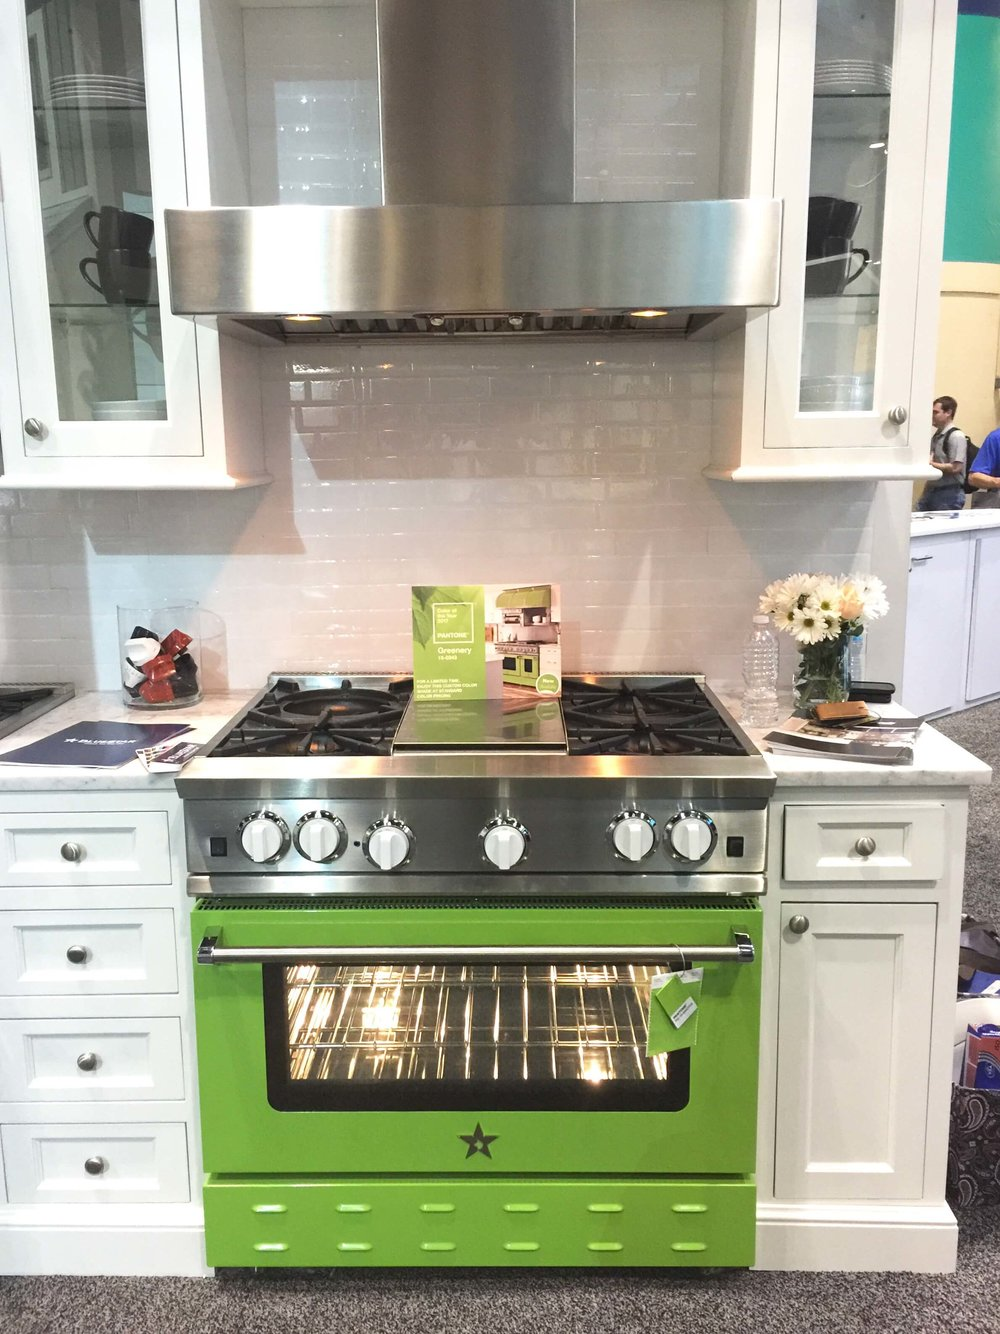 Blue Star Appliances featured a range in Pantone's Color of the Year, Greenery.